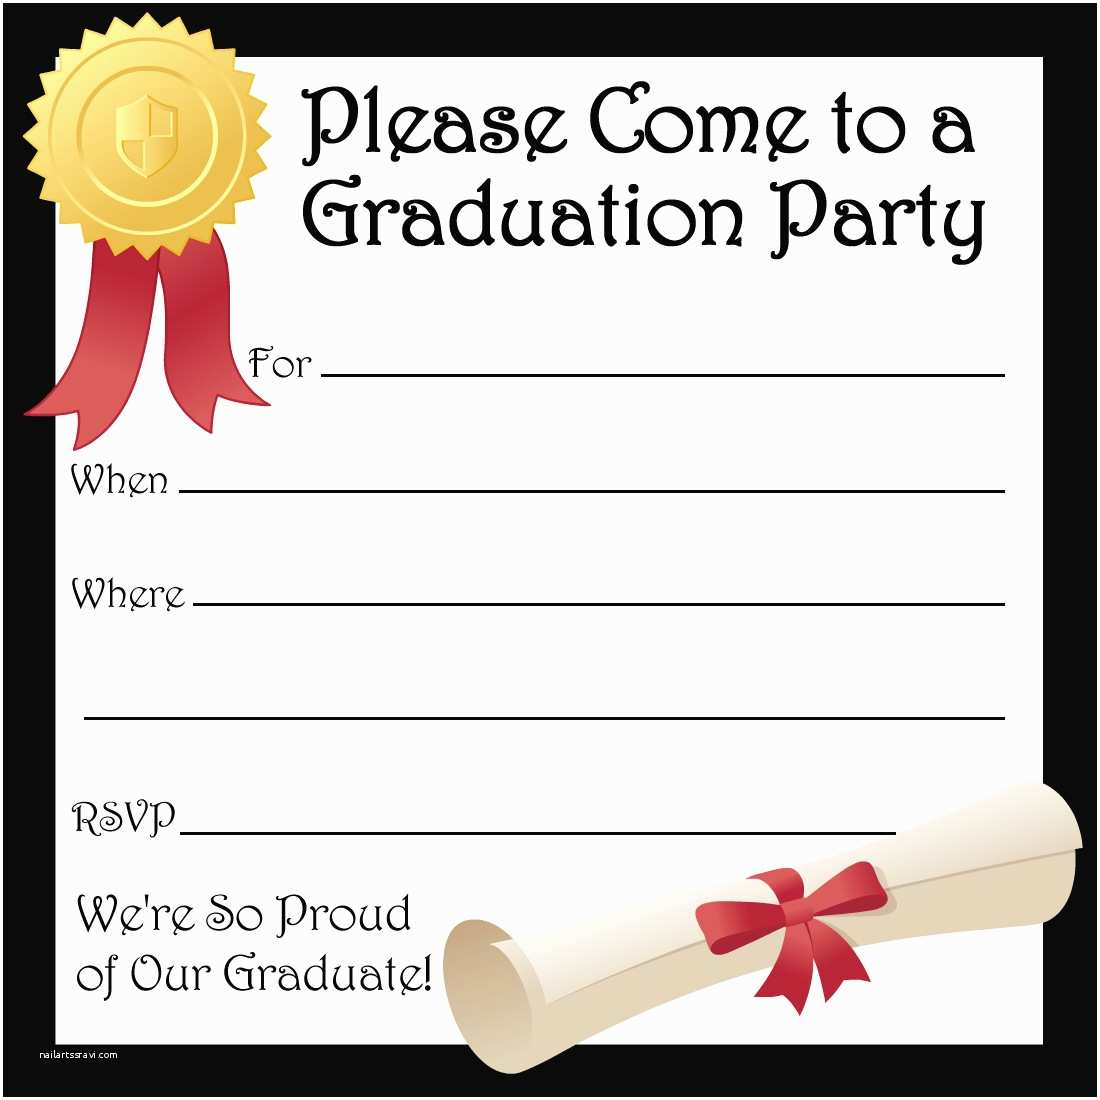 Free Party Invitation Templates Create Own Graduation Party Invitations Templates Free